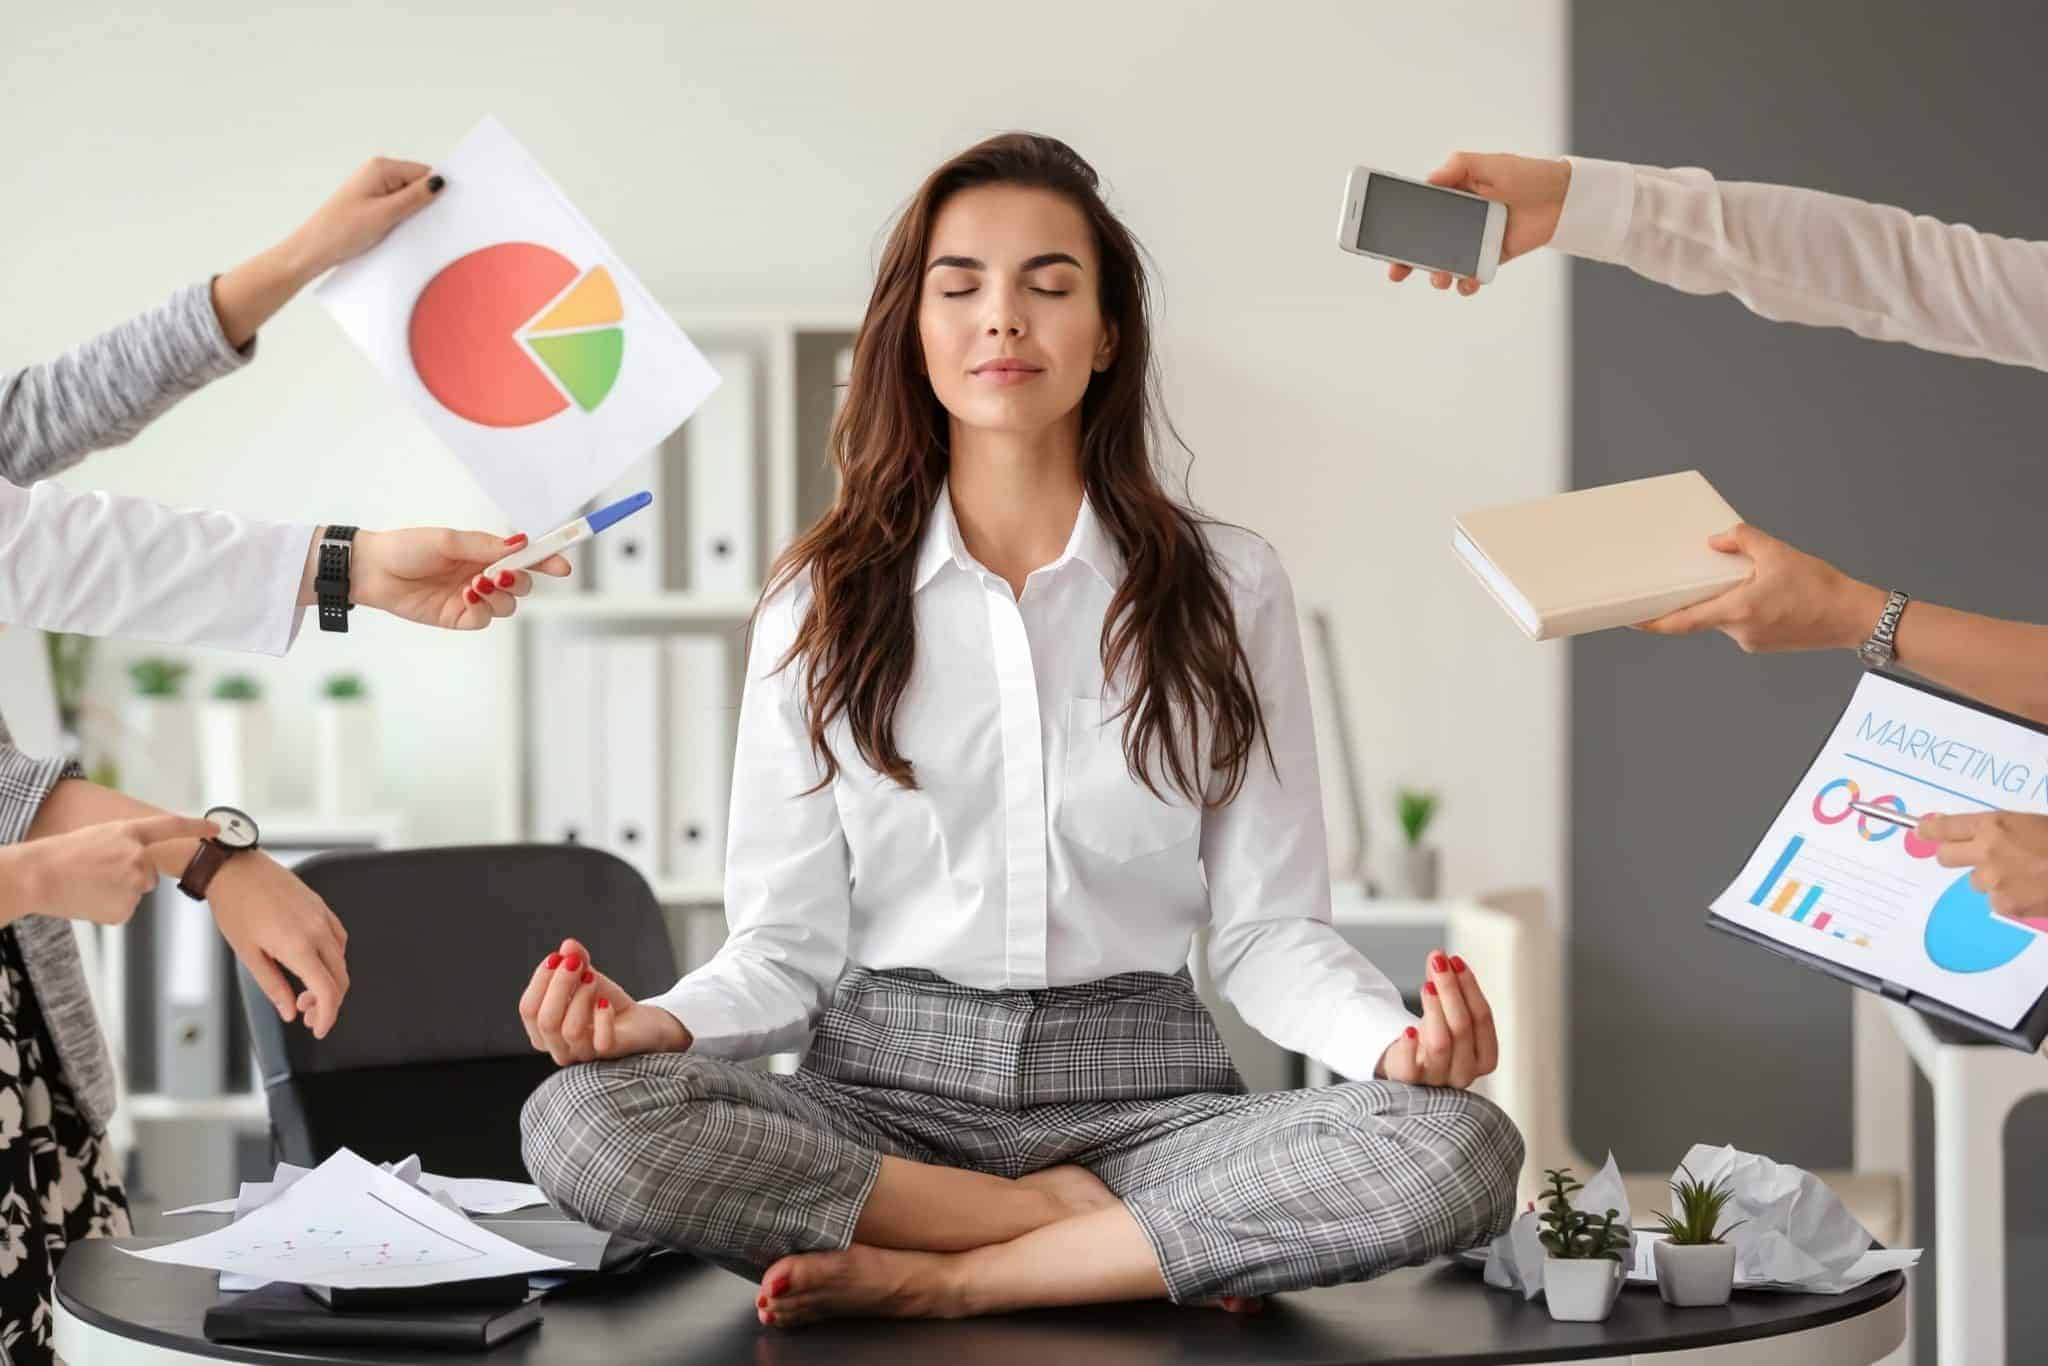 Business woman coping with stress around her through meditation